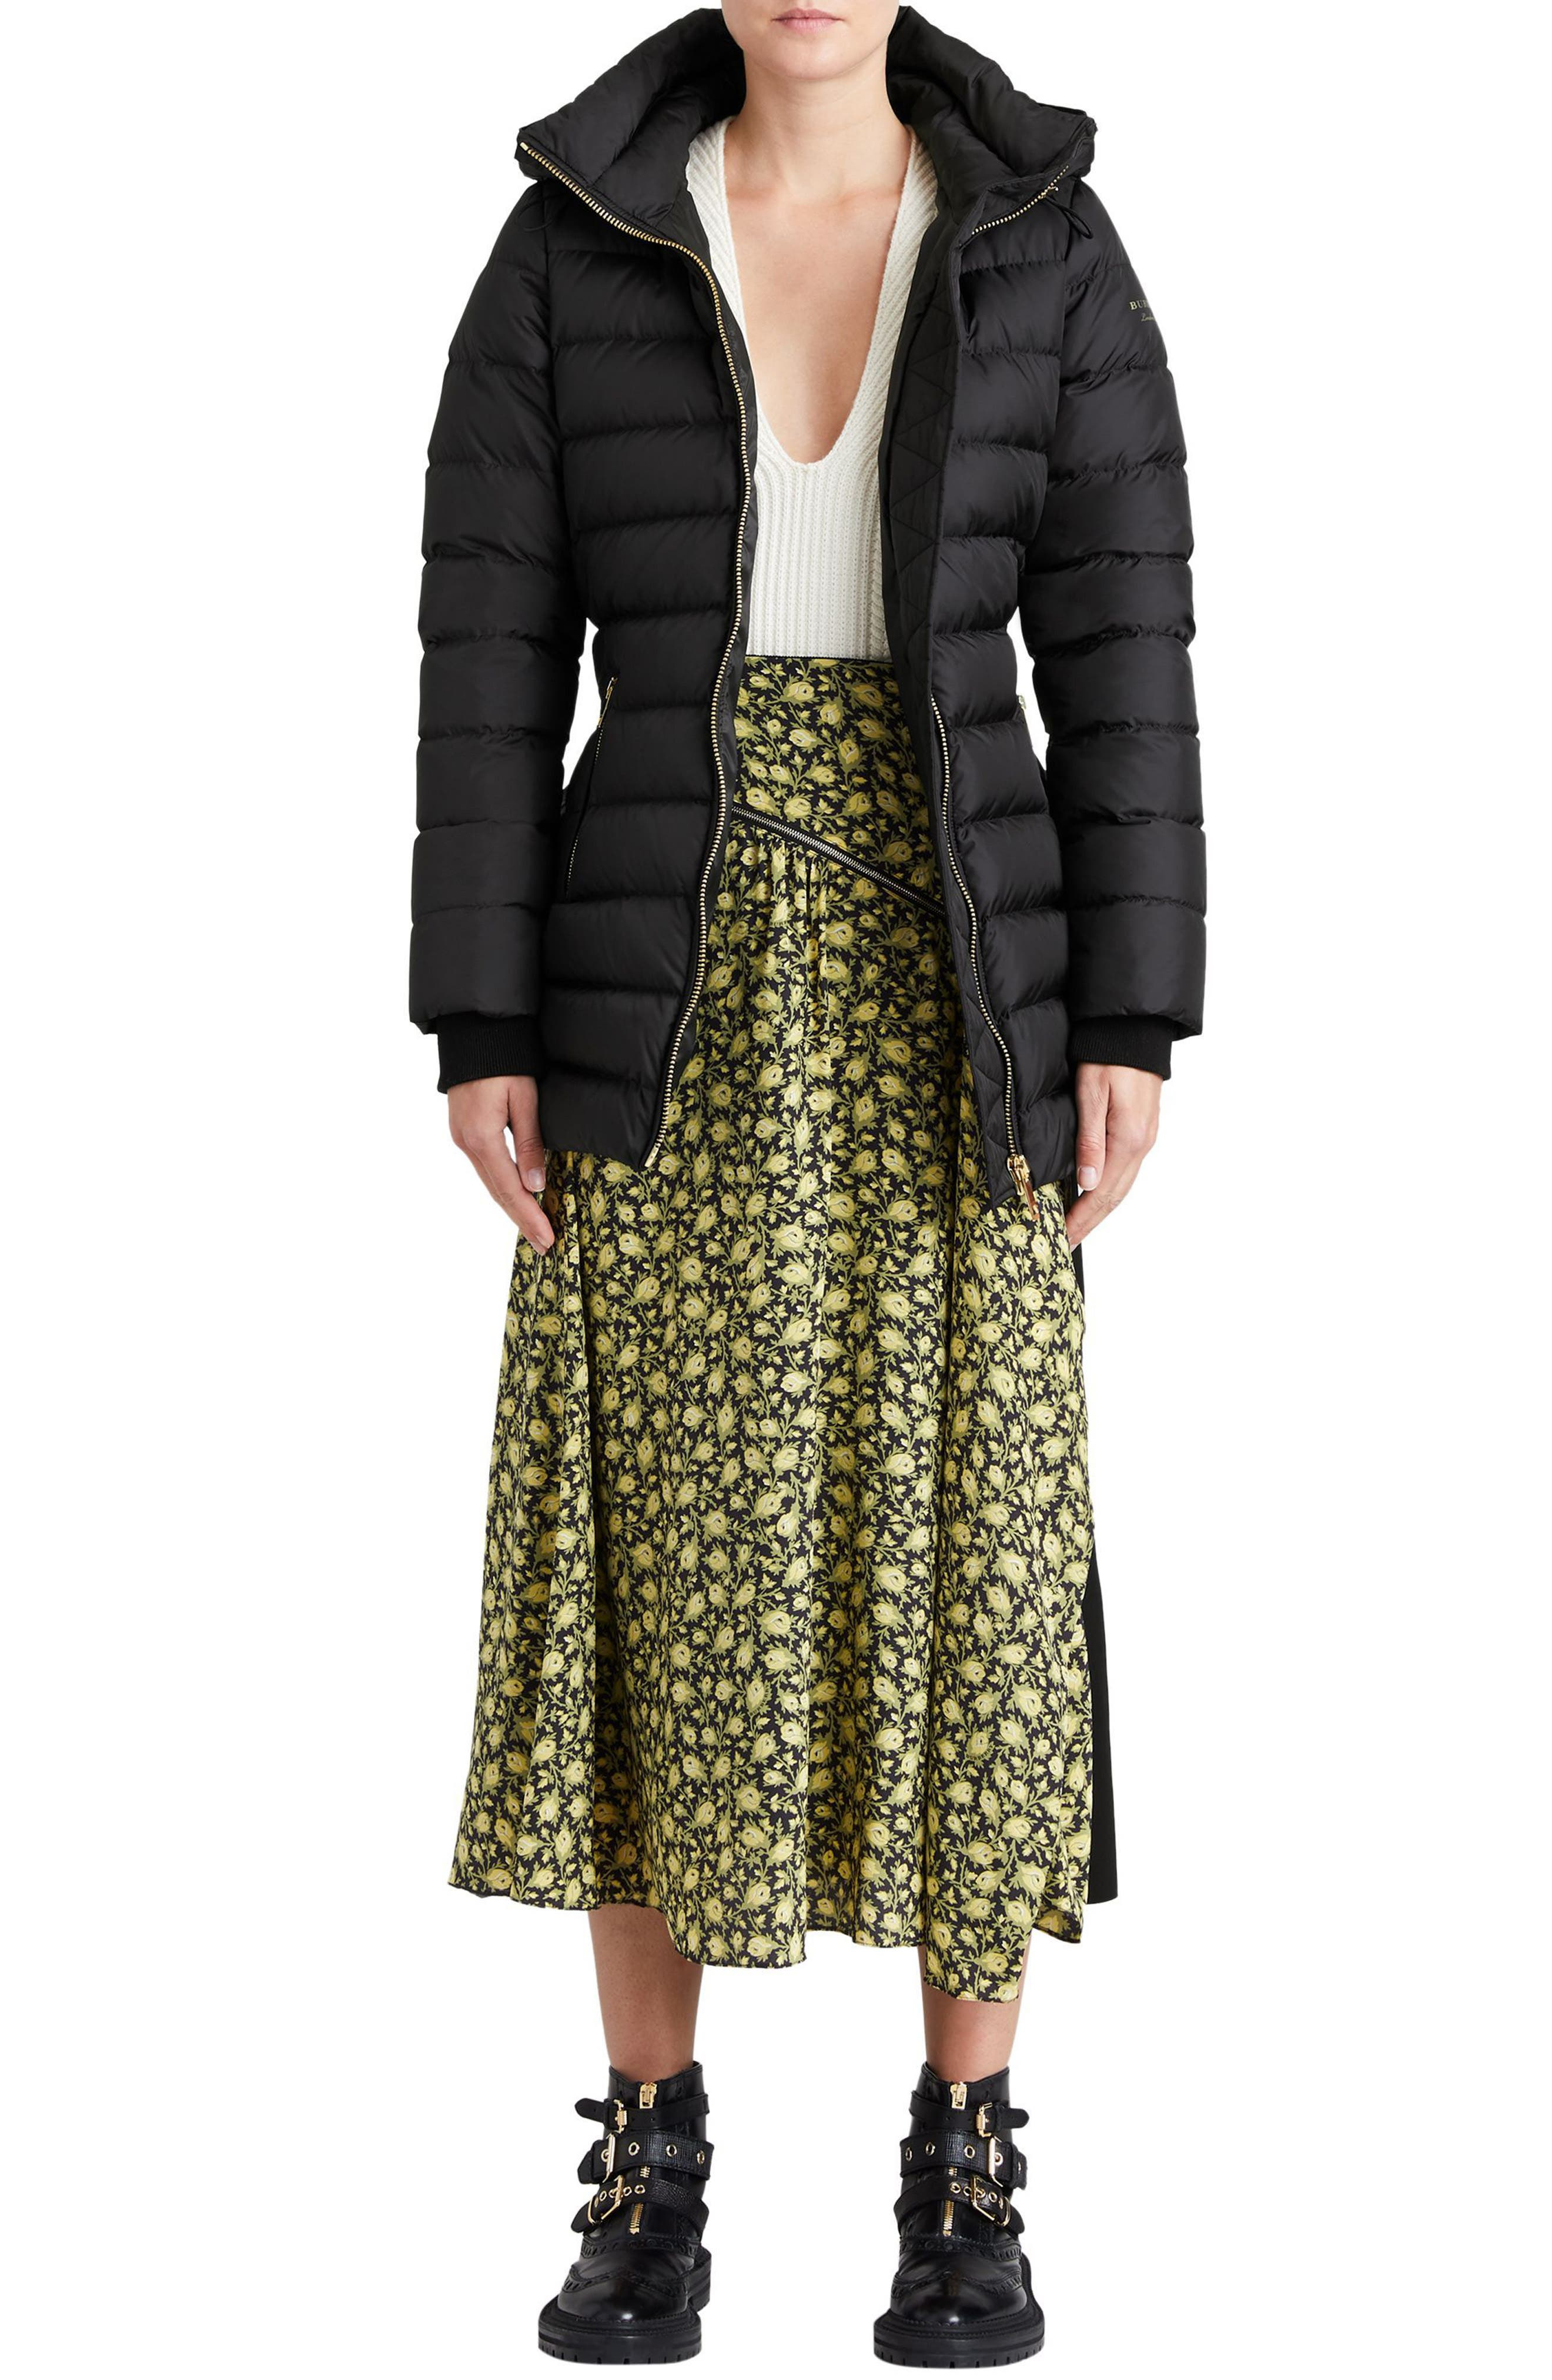 Limefield Hooded Puffer Coat,                             Alternate thumbnail 7, color,                             001